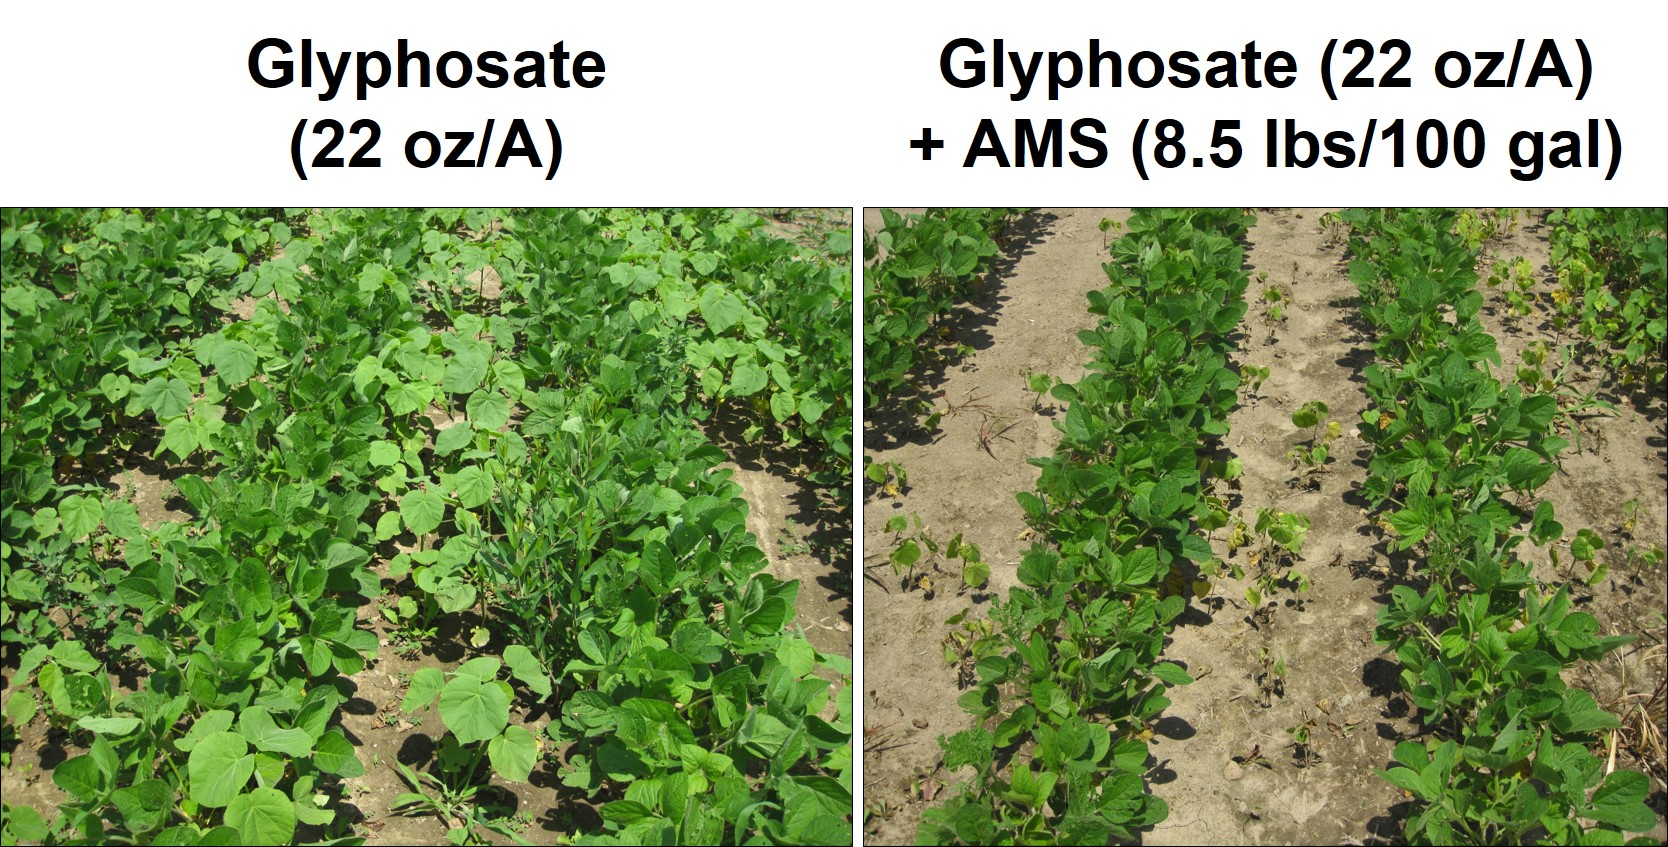 Figure 5. Effect of Ammonium Sulfate (AMS) on velvetleaf control with glyphosate in the field.